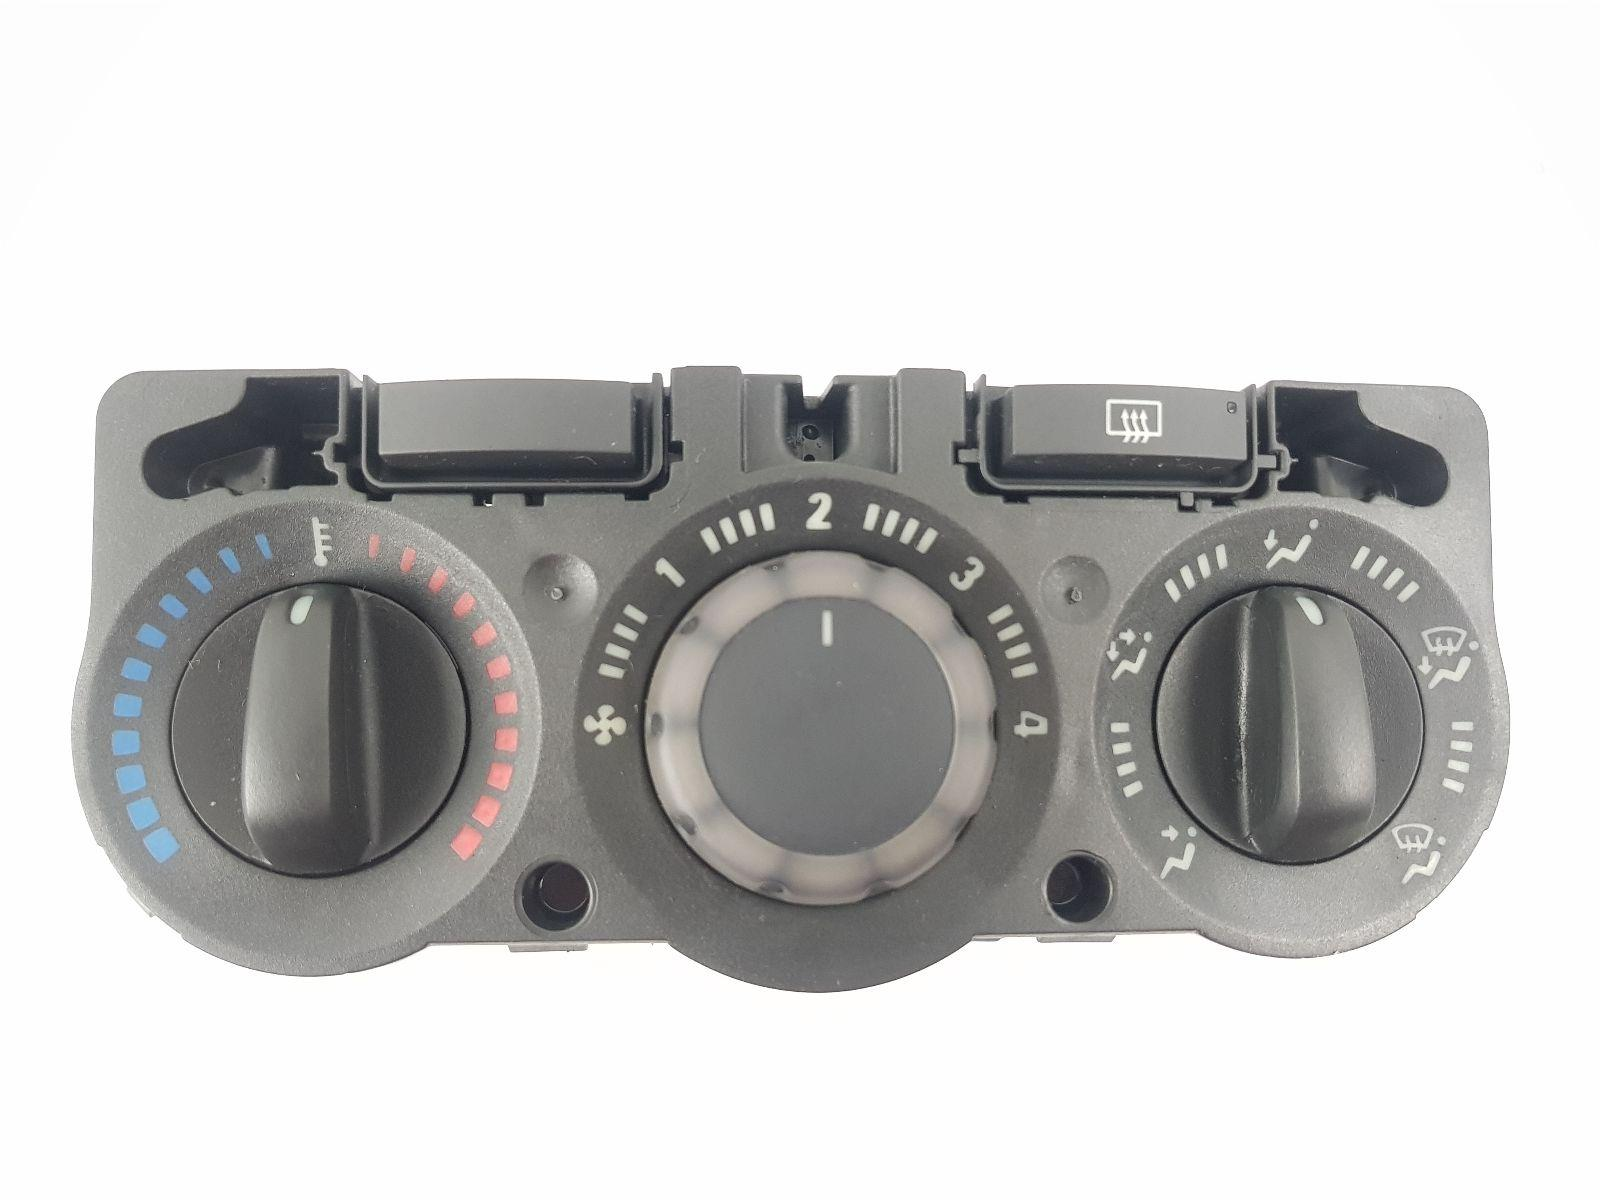 Vauxhall Corsa 2011 To 2014 Heater Control Assembly (Petrol / Manual